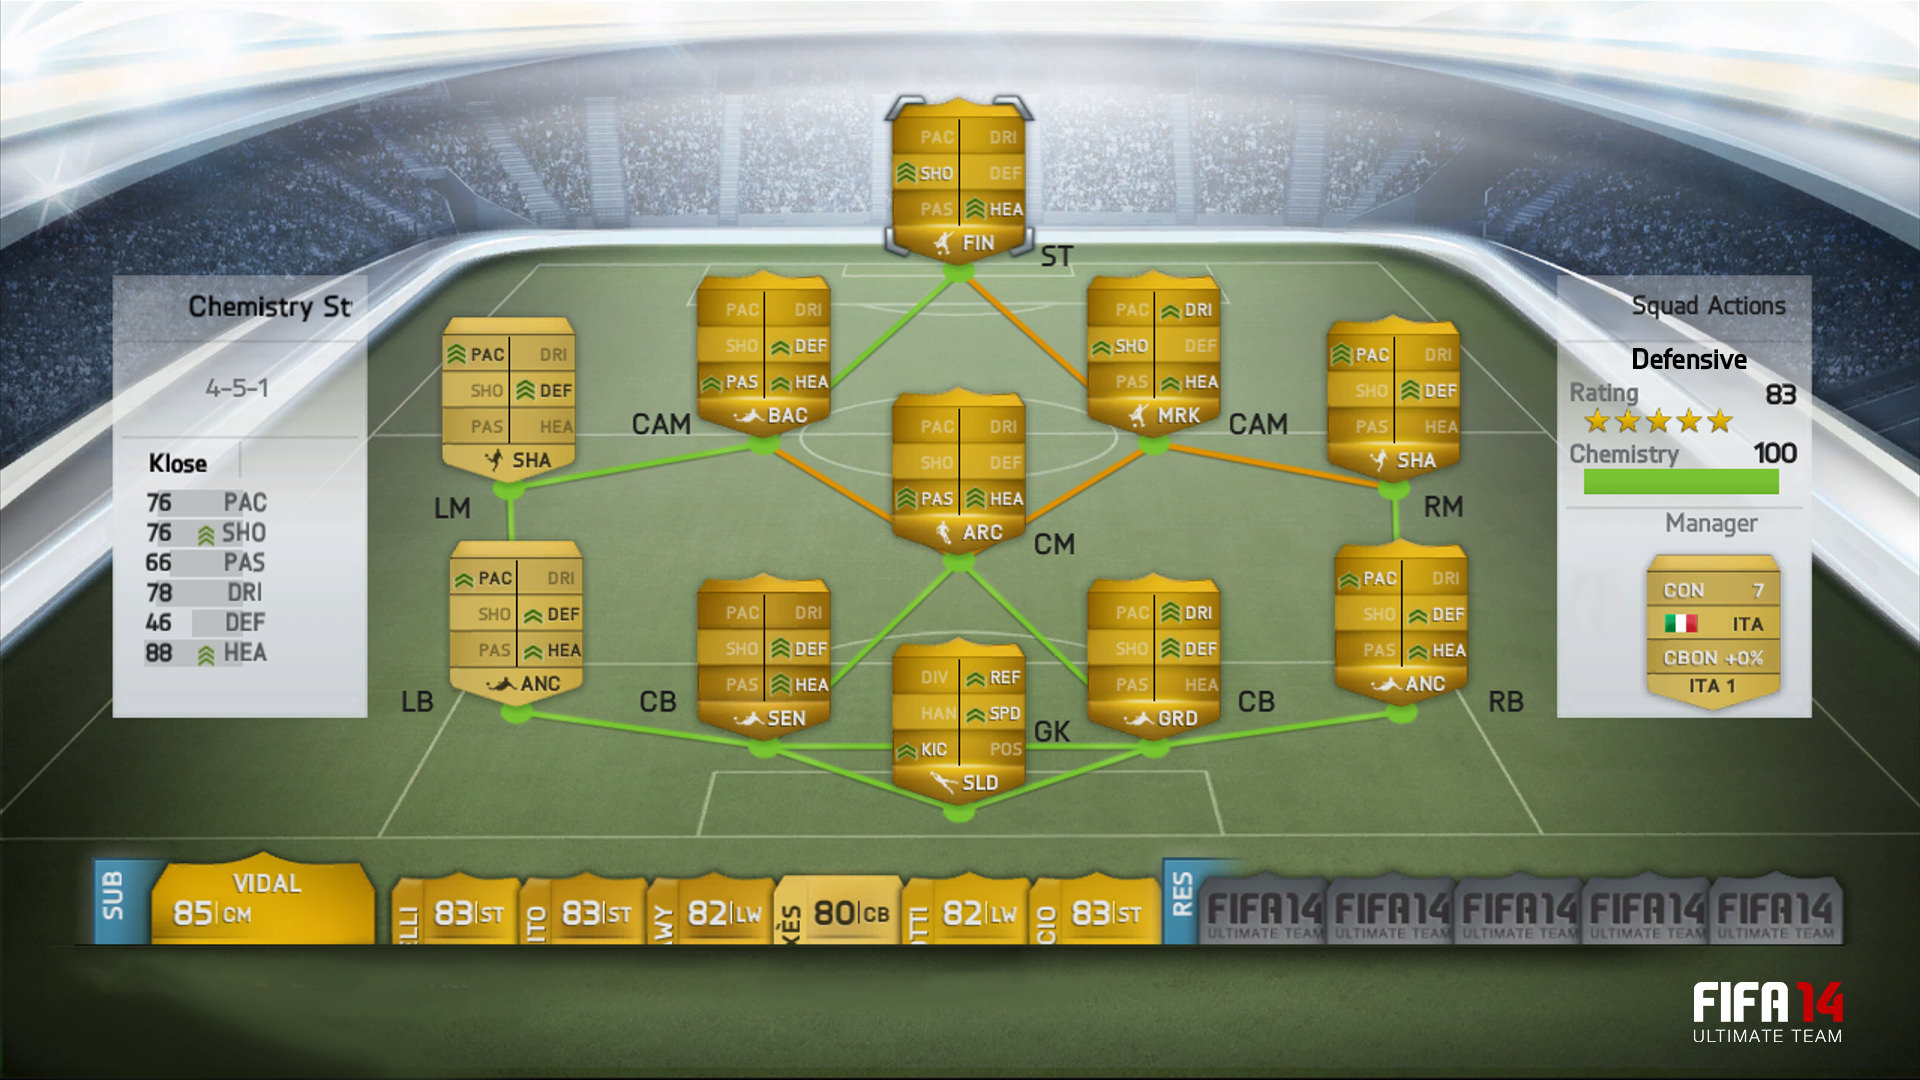 FIFA 14 Ultimate Team